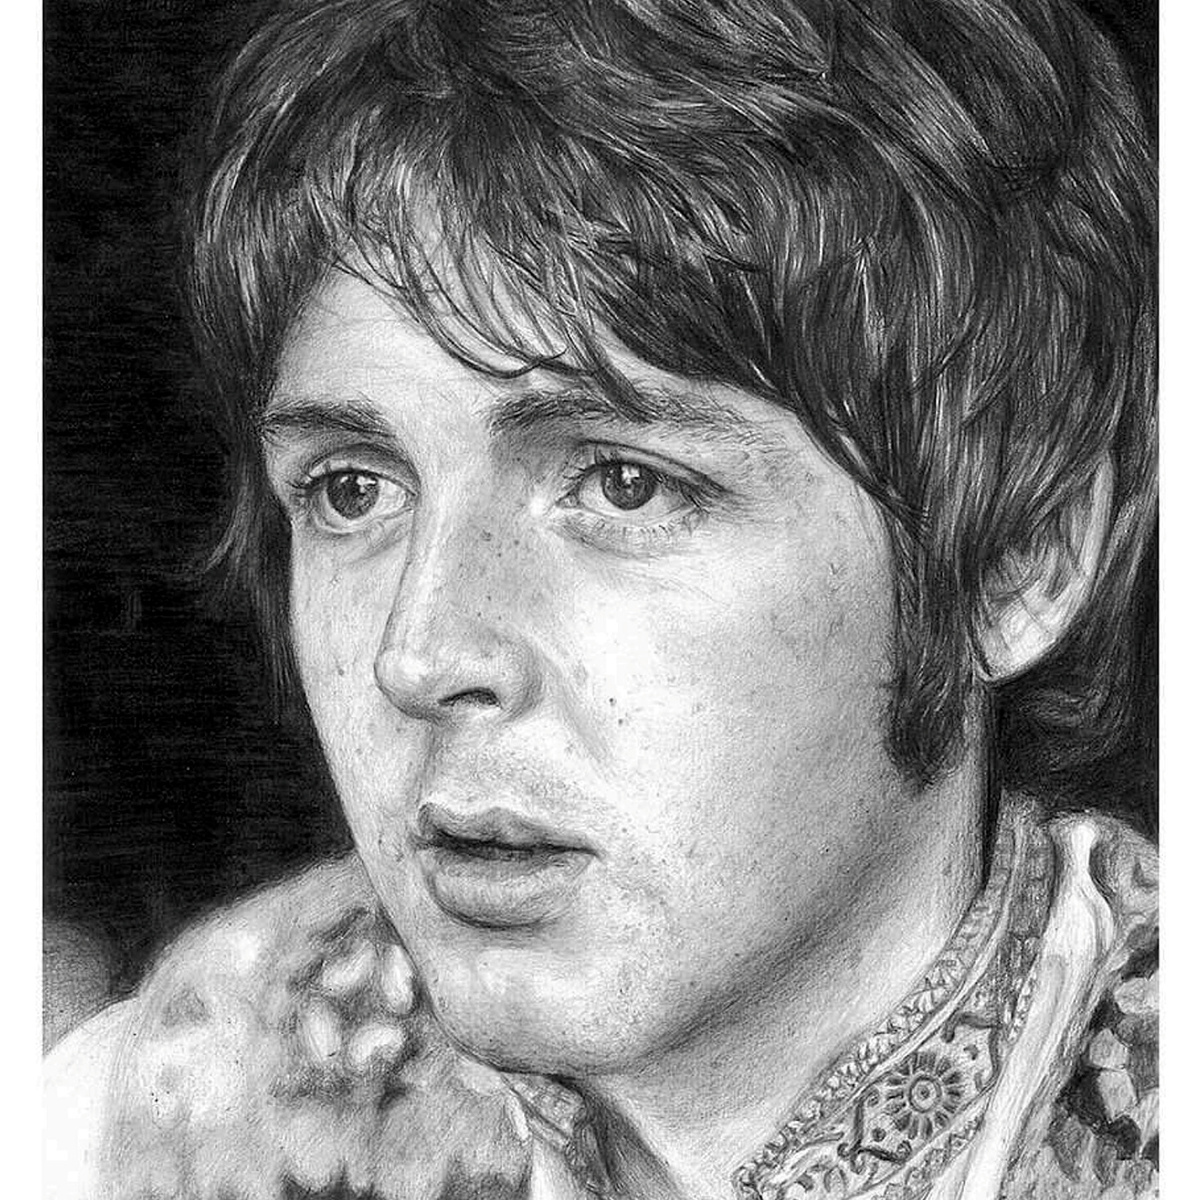 SWNS BEATLES DRAWINGS 01 Former Model Now Creates Incredible Photo Real Portraits Using Pencil